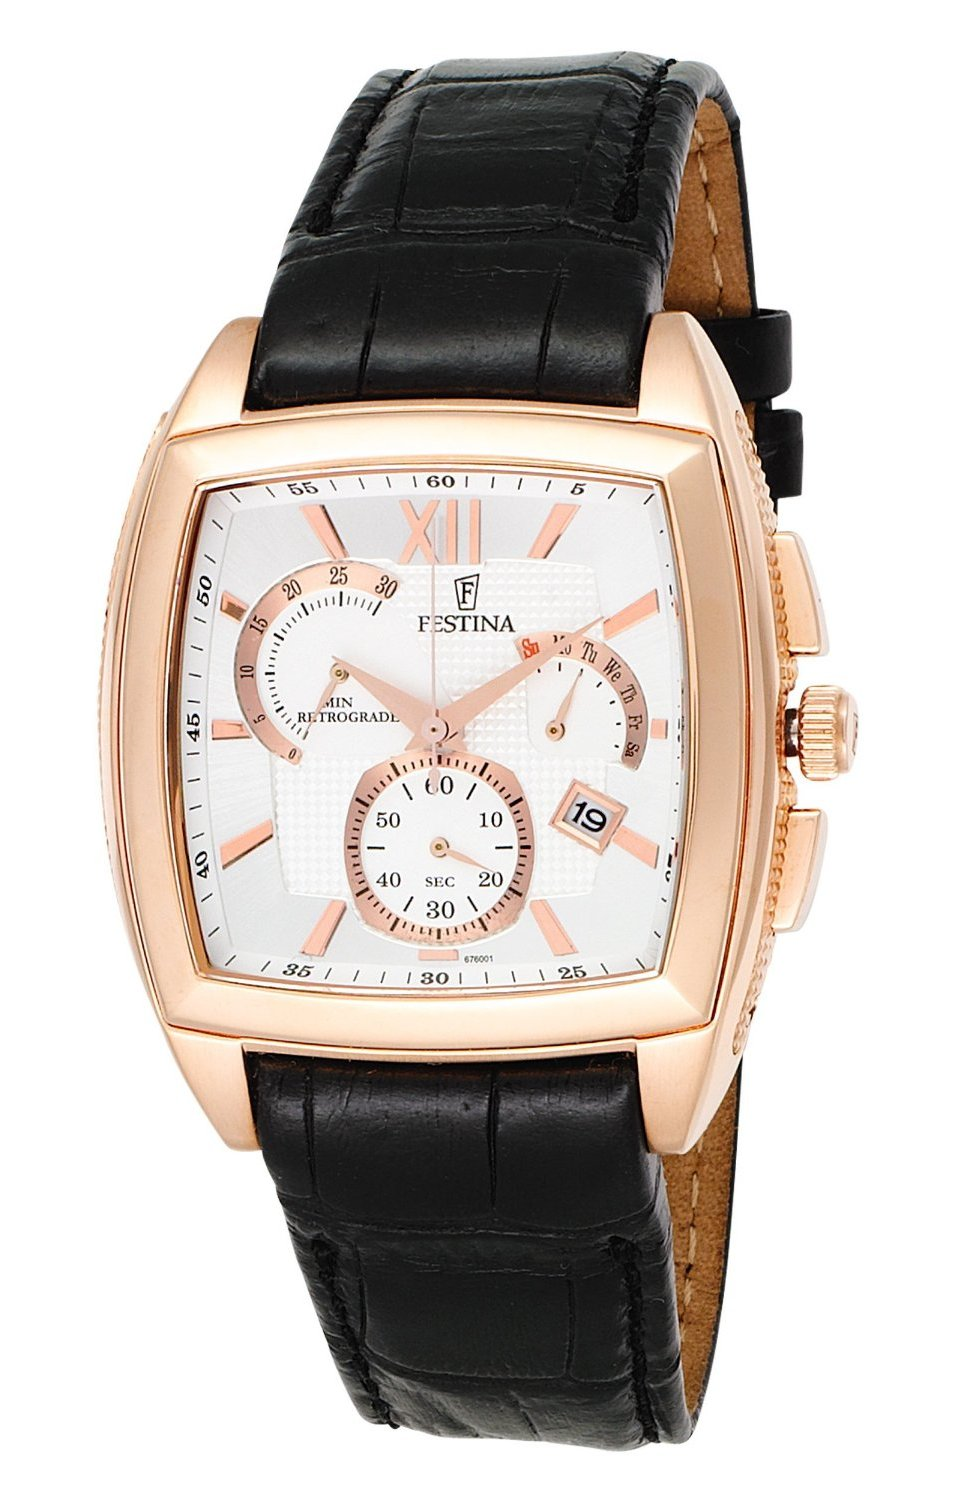 Festina Watches Sale